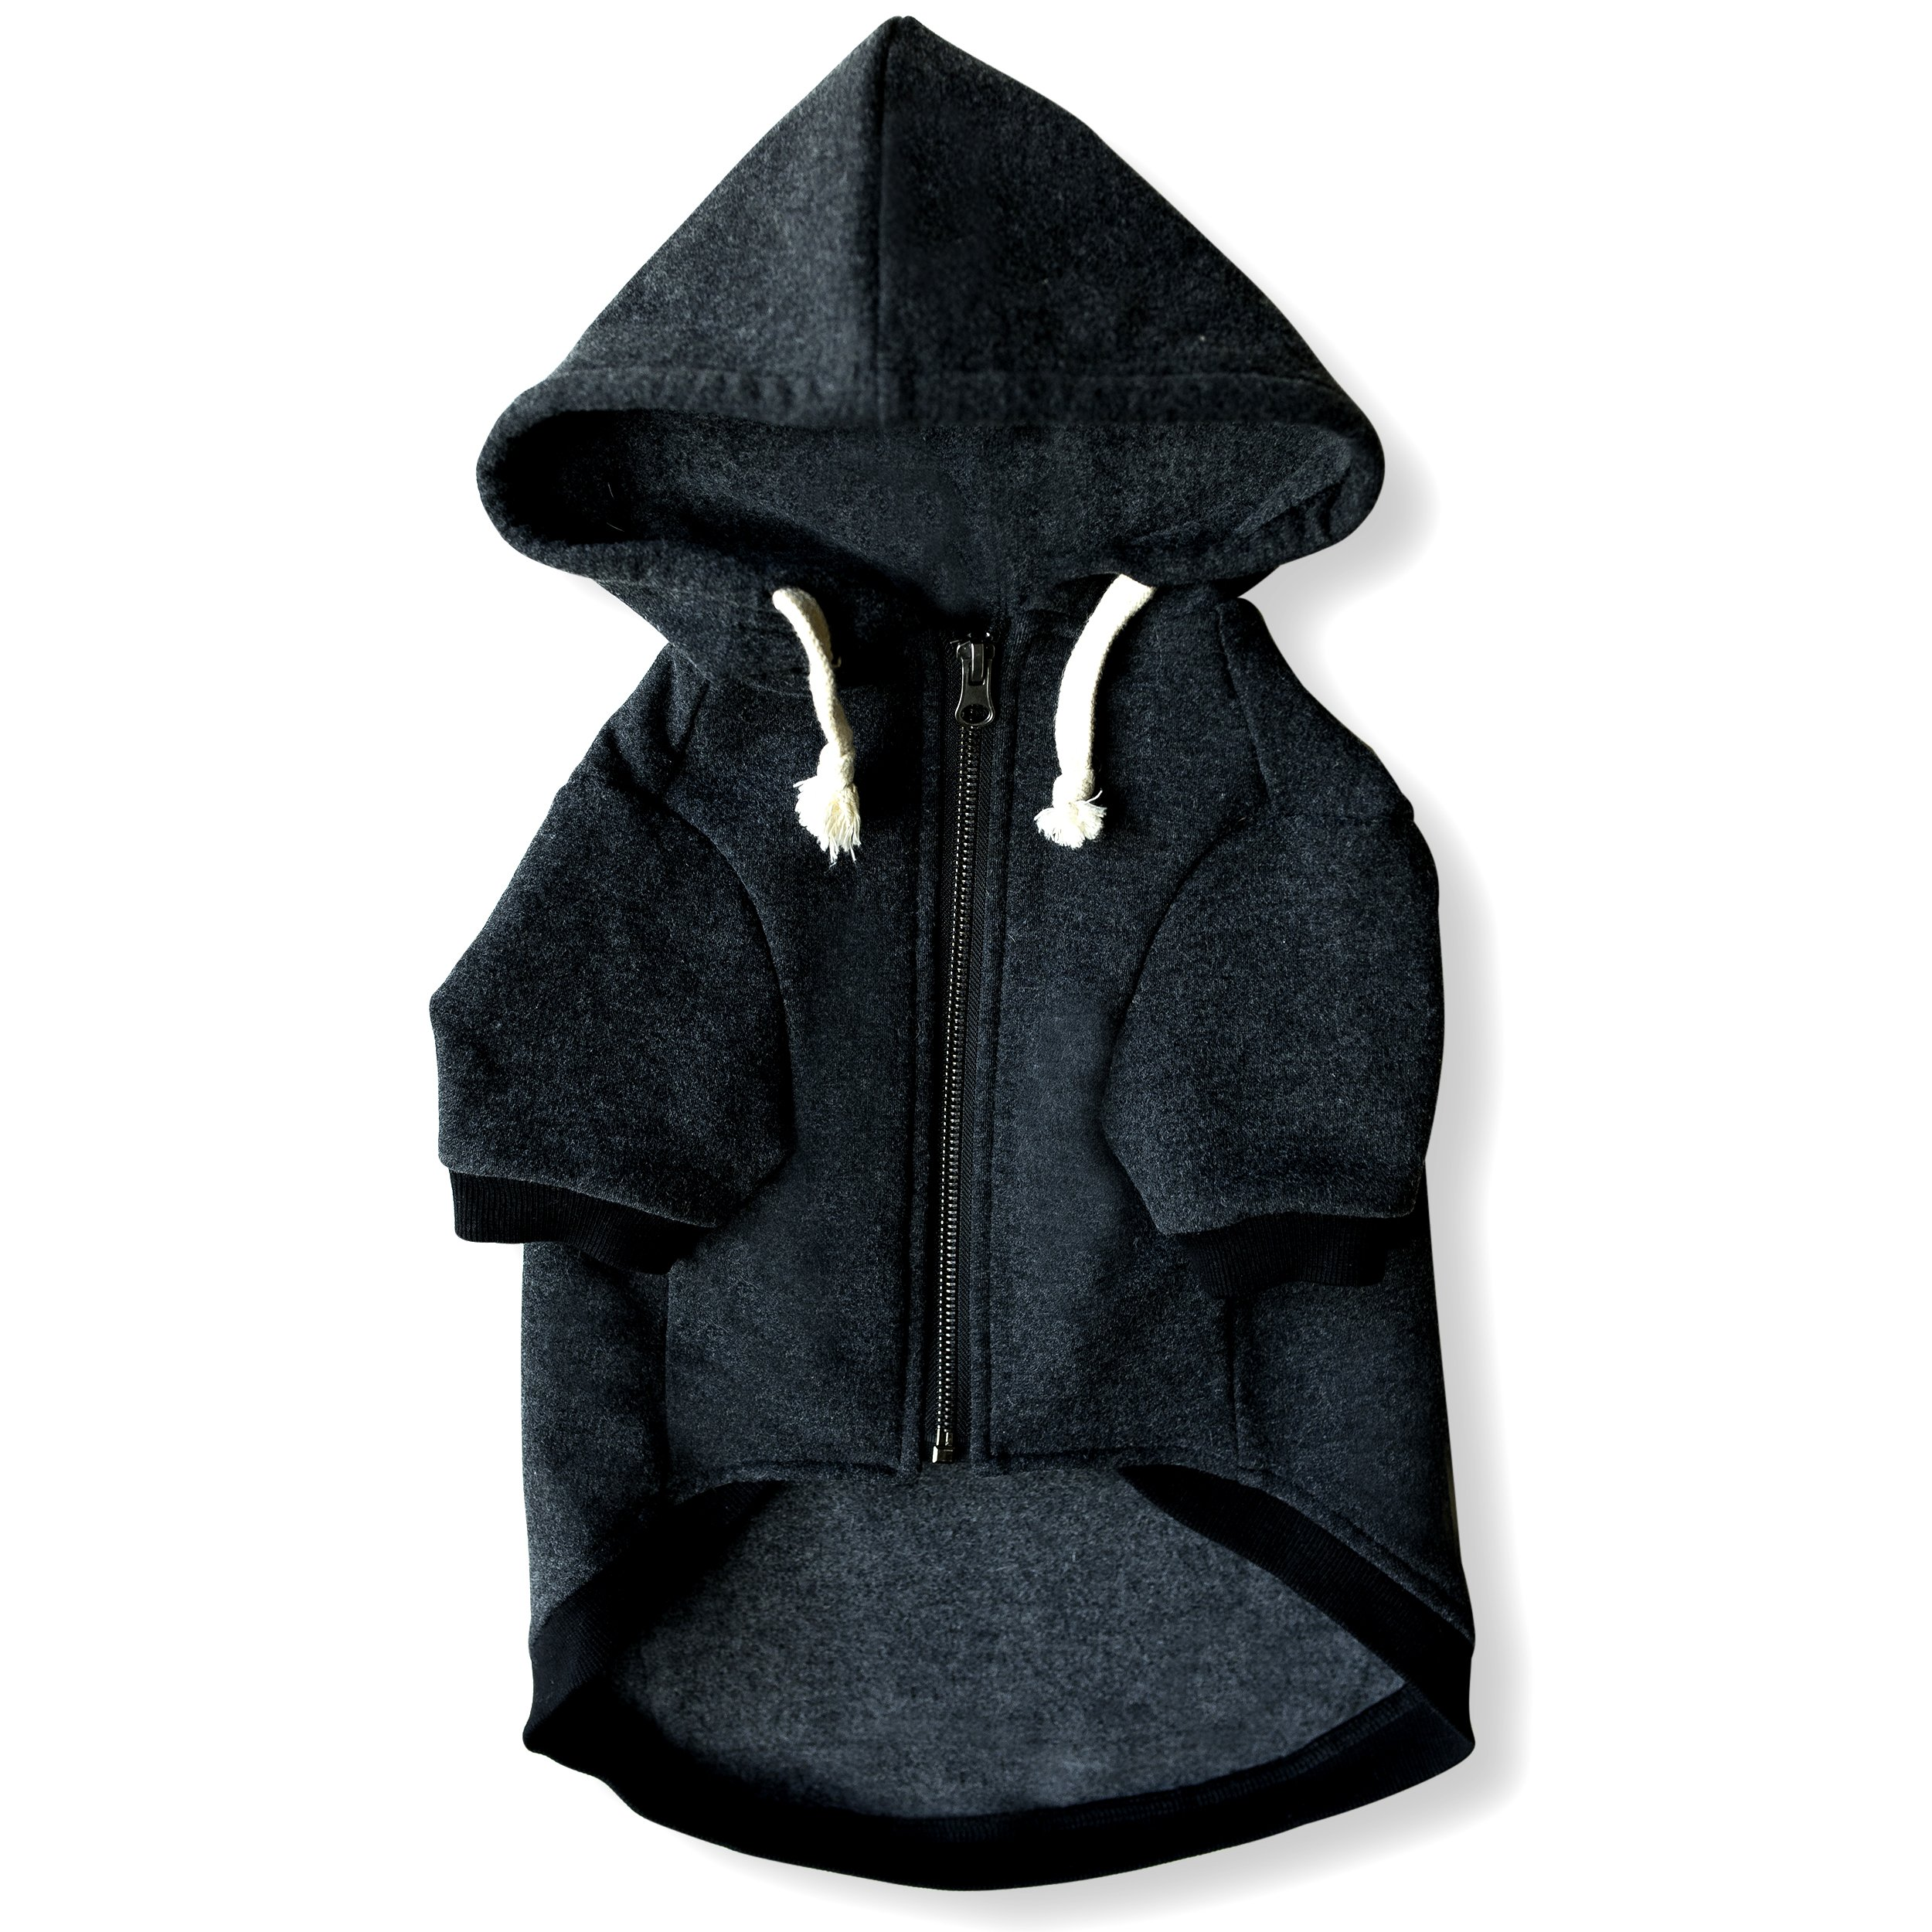 Ellie Dog Wear Zip Up Adventure Charcoal Grey Dog Hoodie with Hook & Loop Pockets and Adjustable Drawstring Hood - XXS to XXL Available - Comfortable & Versatile Premium Dog Hoodies (XS)